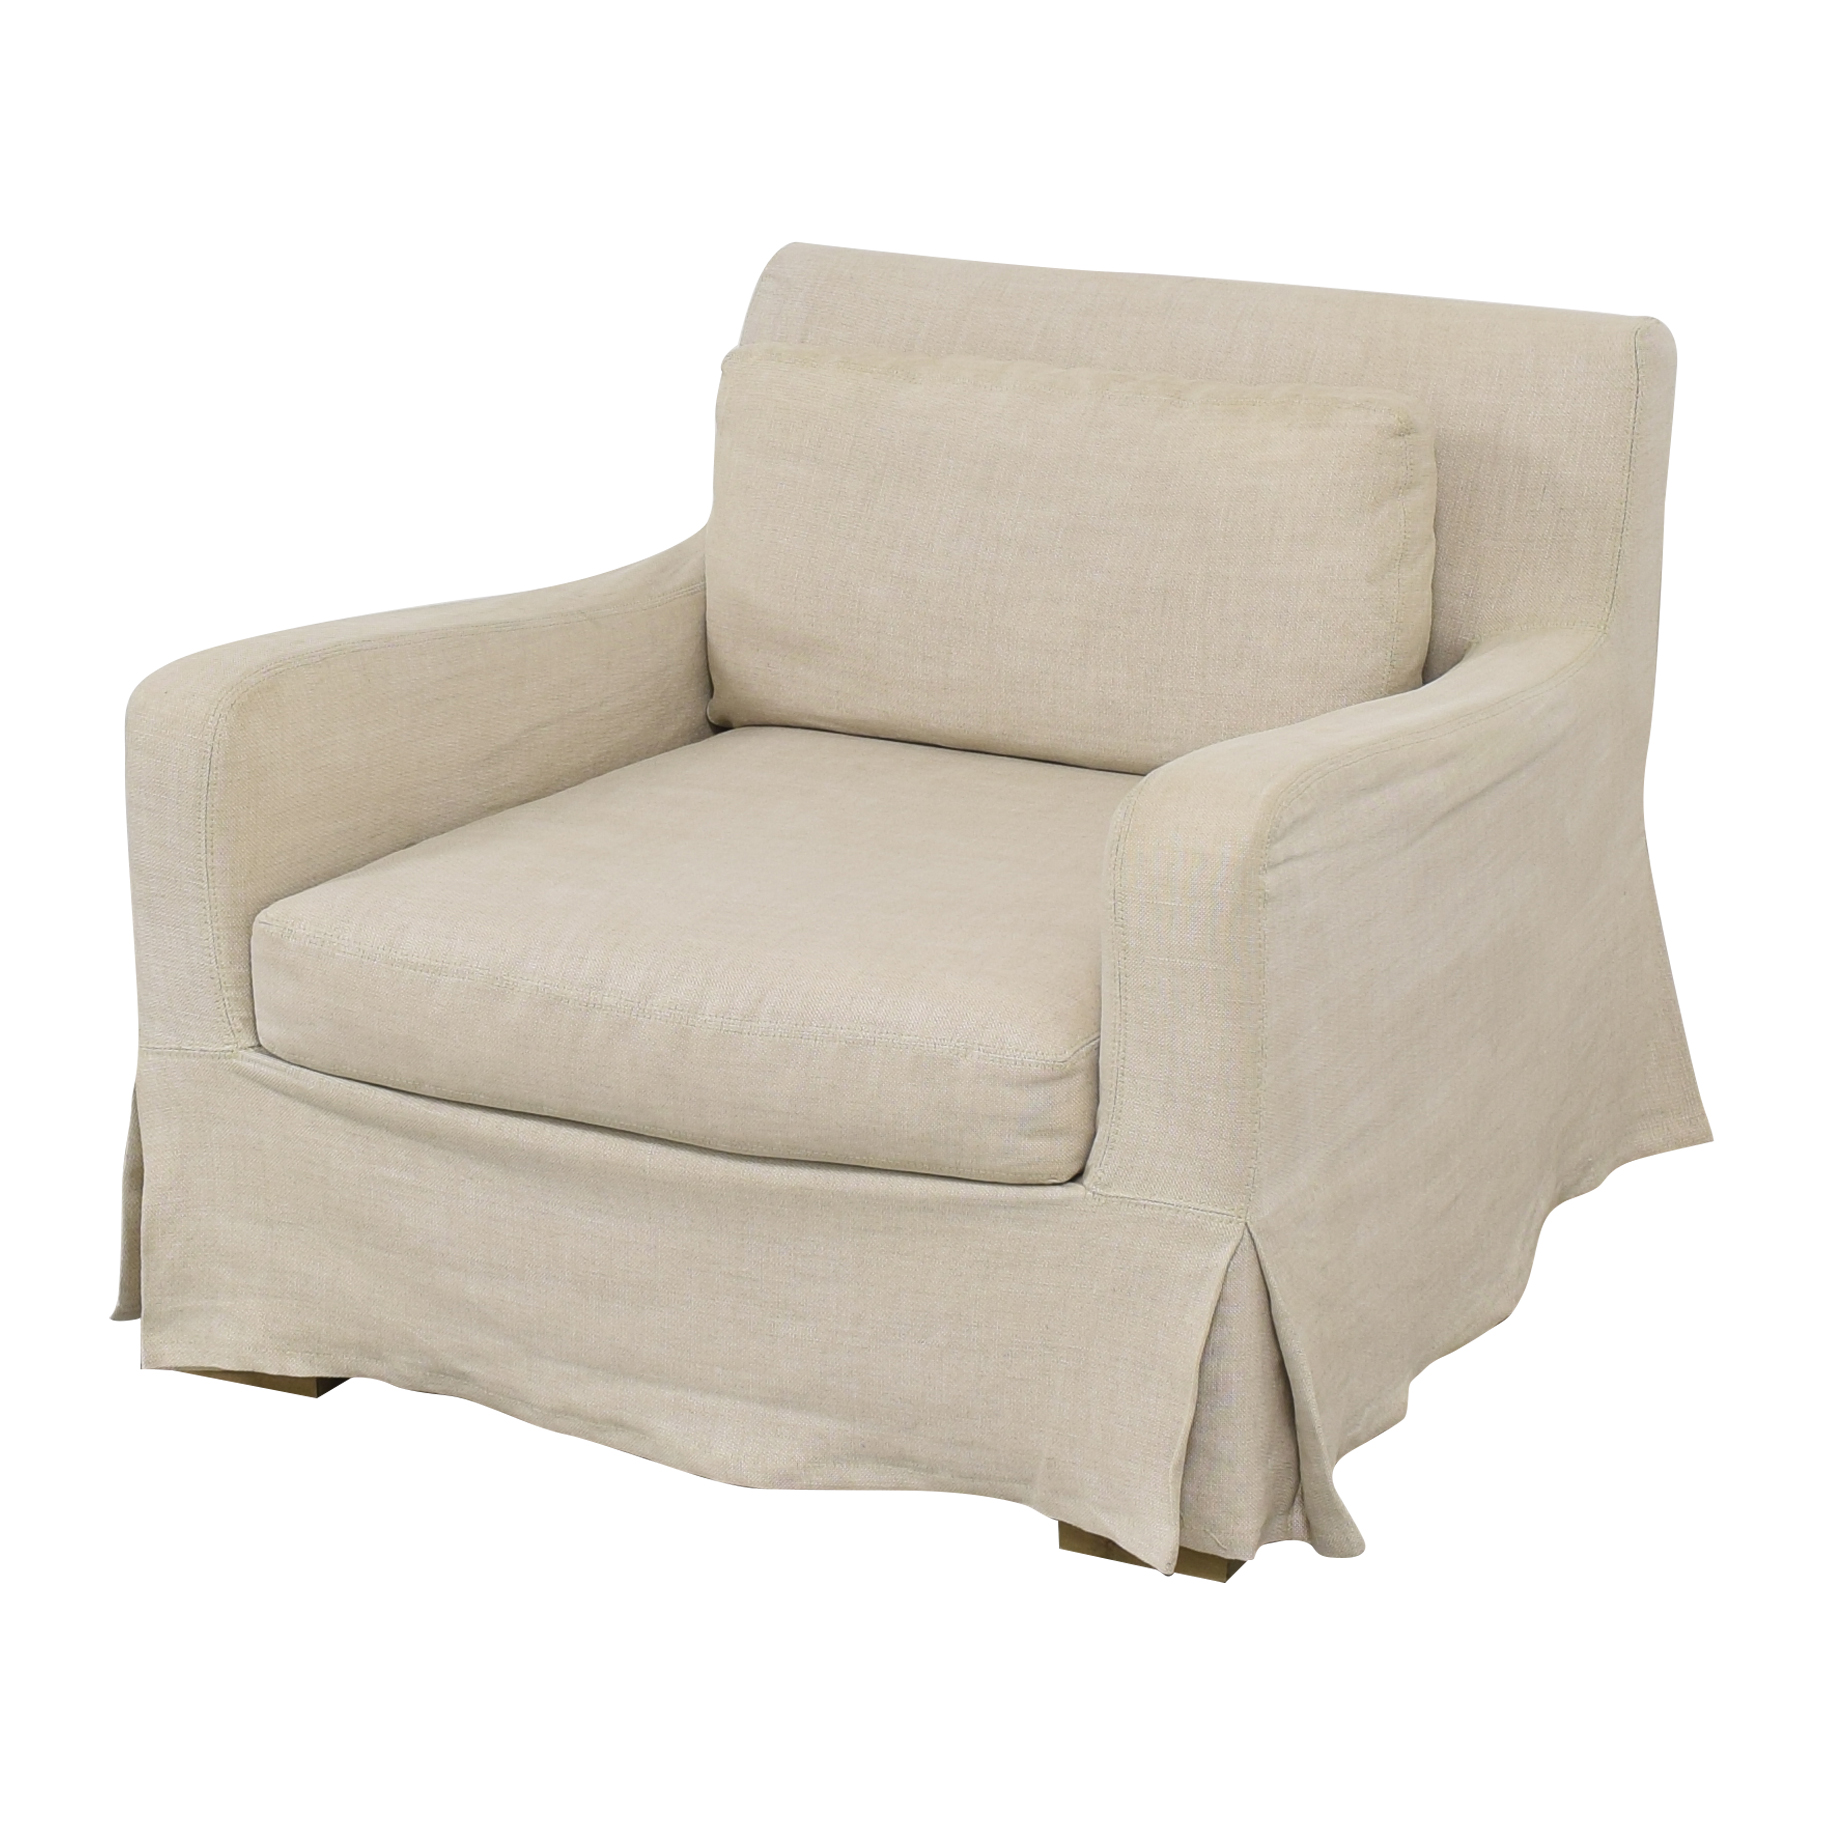 Restoration Hardware Restoration Hardware Belgian Slope Arm Slipcovered Chair Chairs